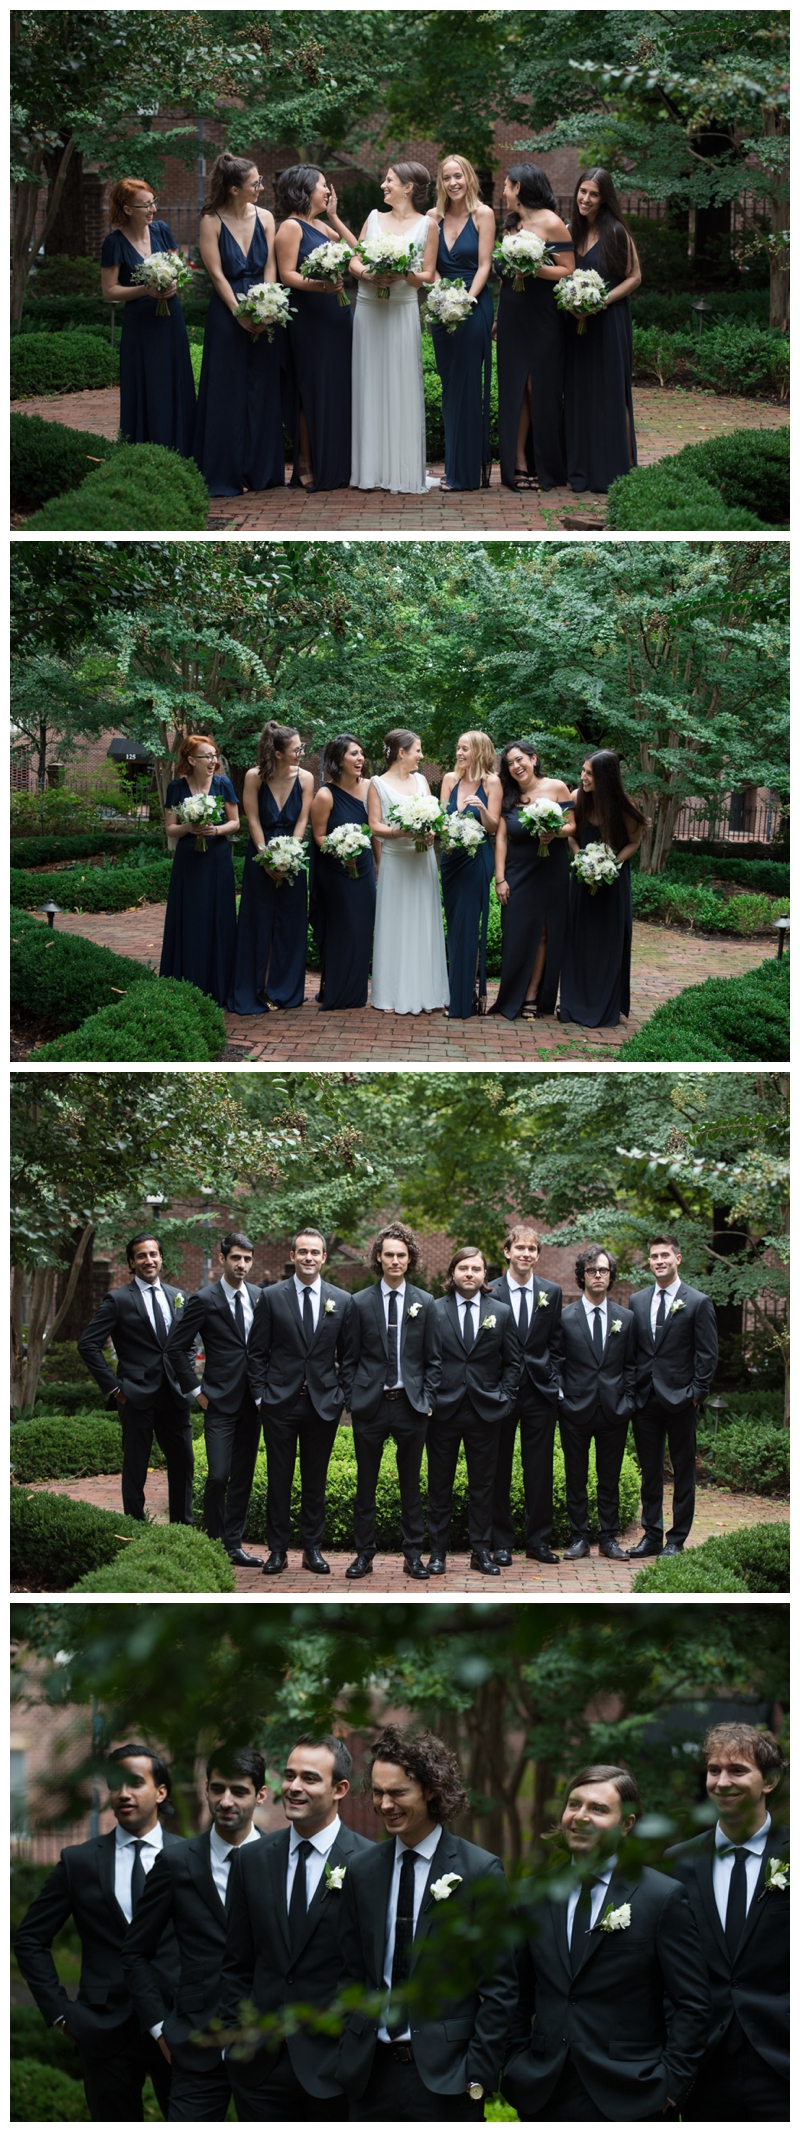 Wedding in Old Town Alexandria Virginia at the Torpedo Factory Art Center by Rachael Foster Photography_0051.jpg